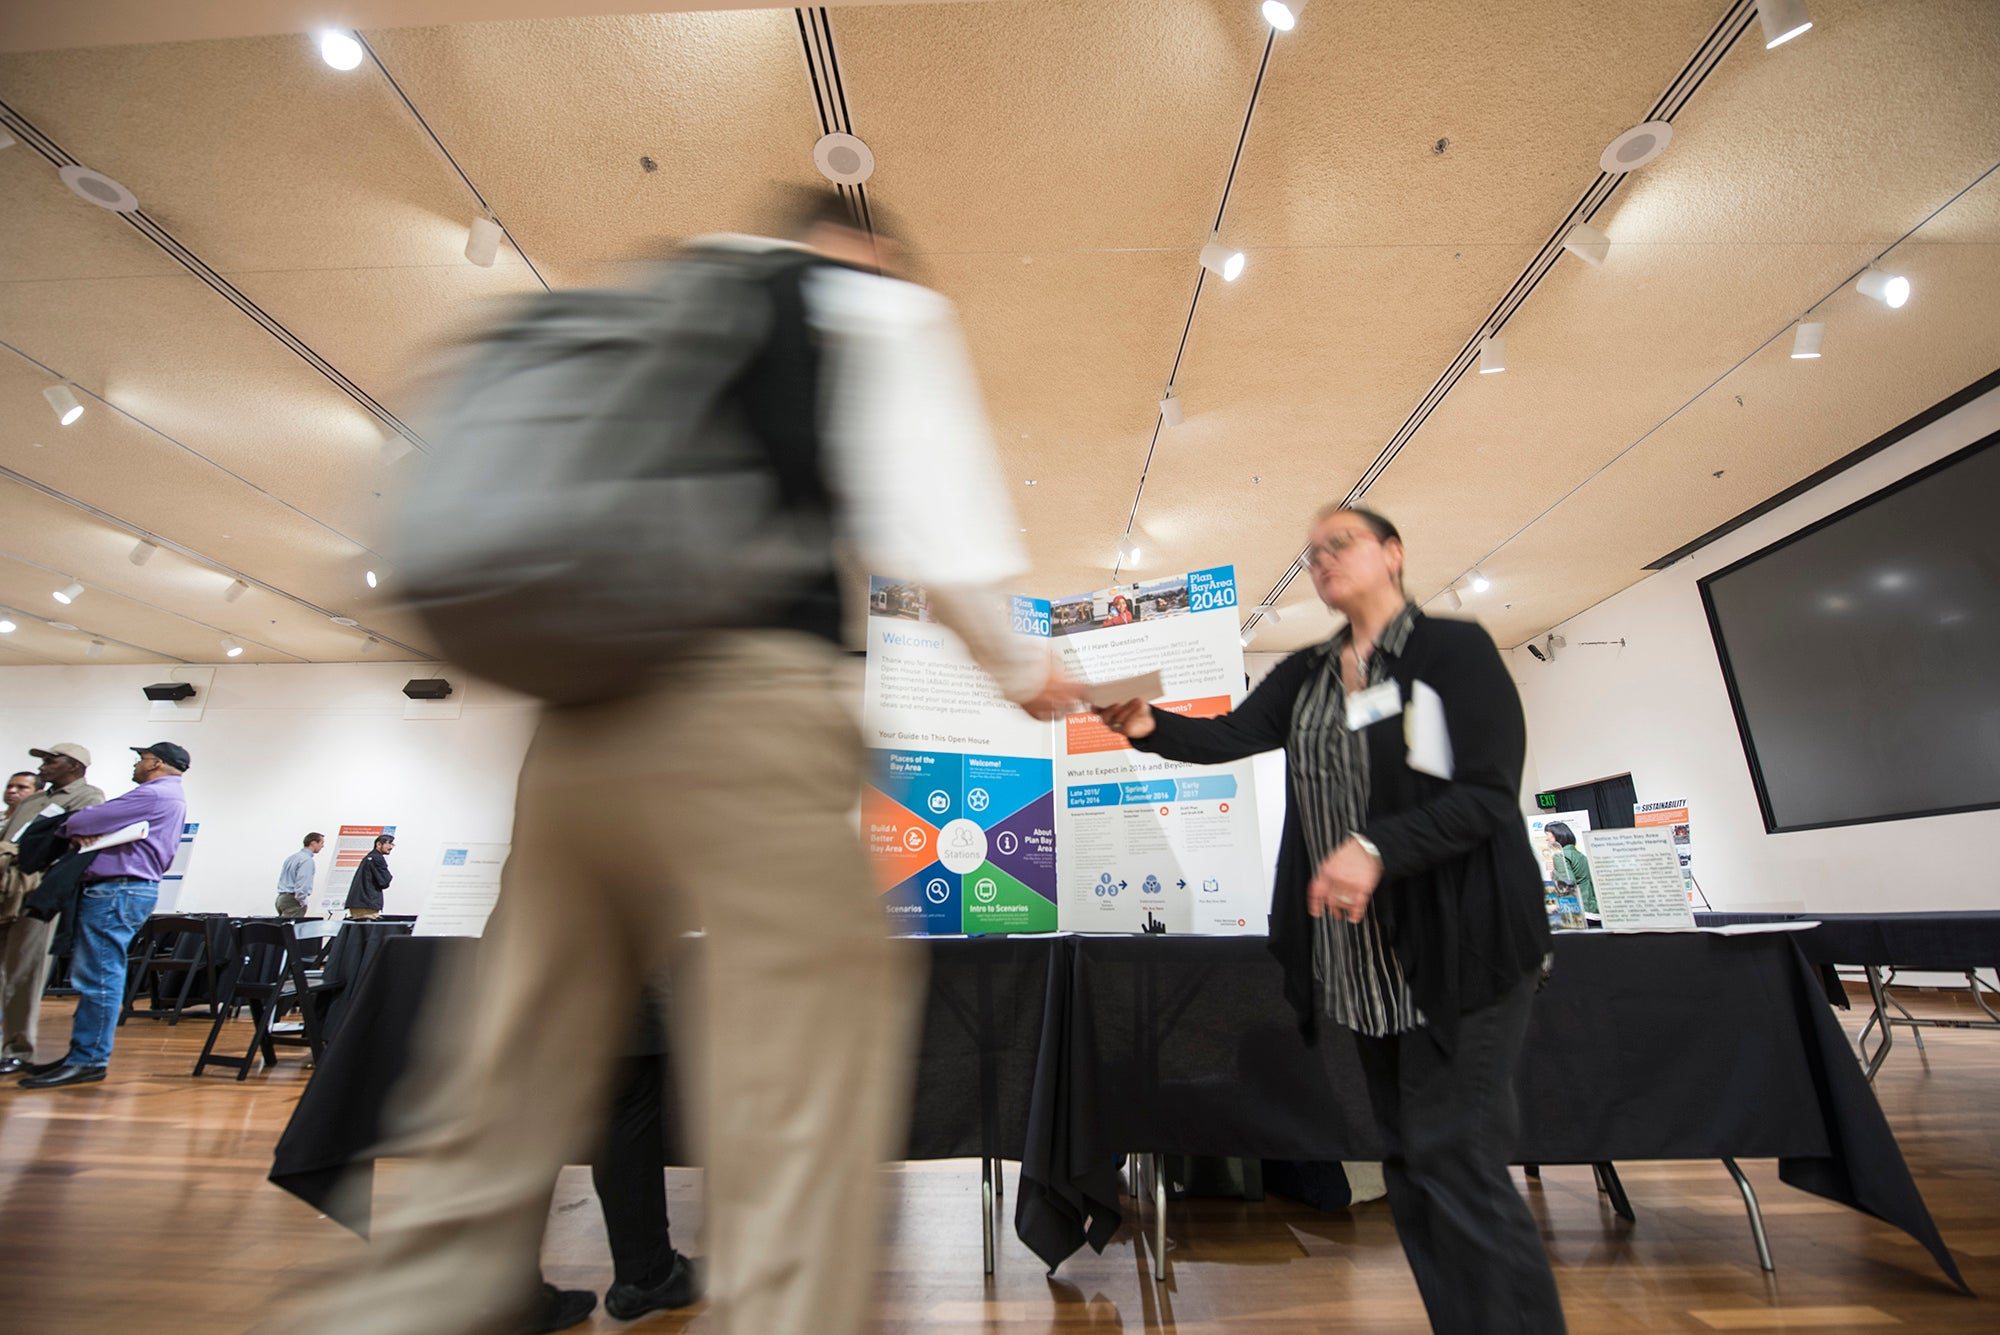 Two people shaking hands at an expo